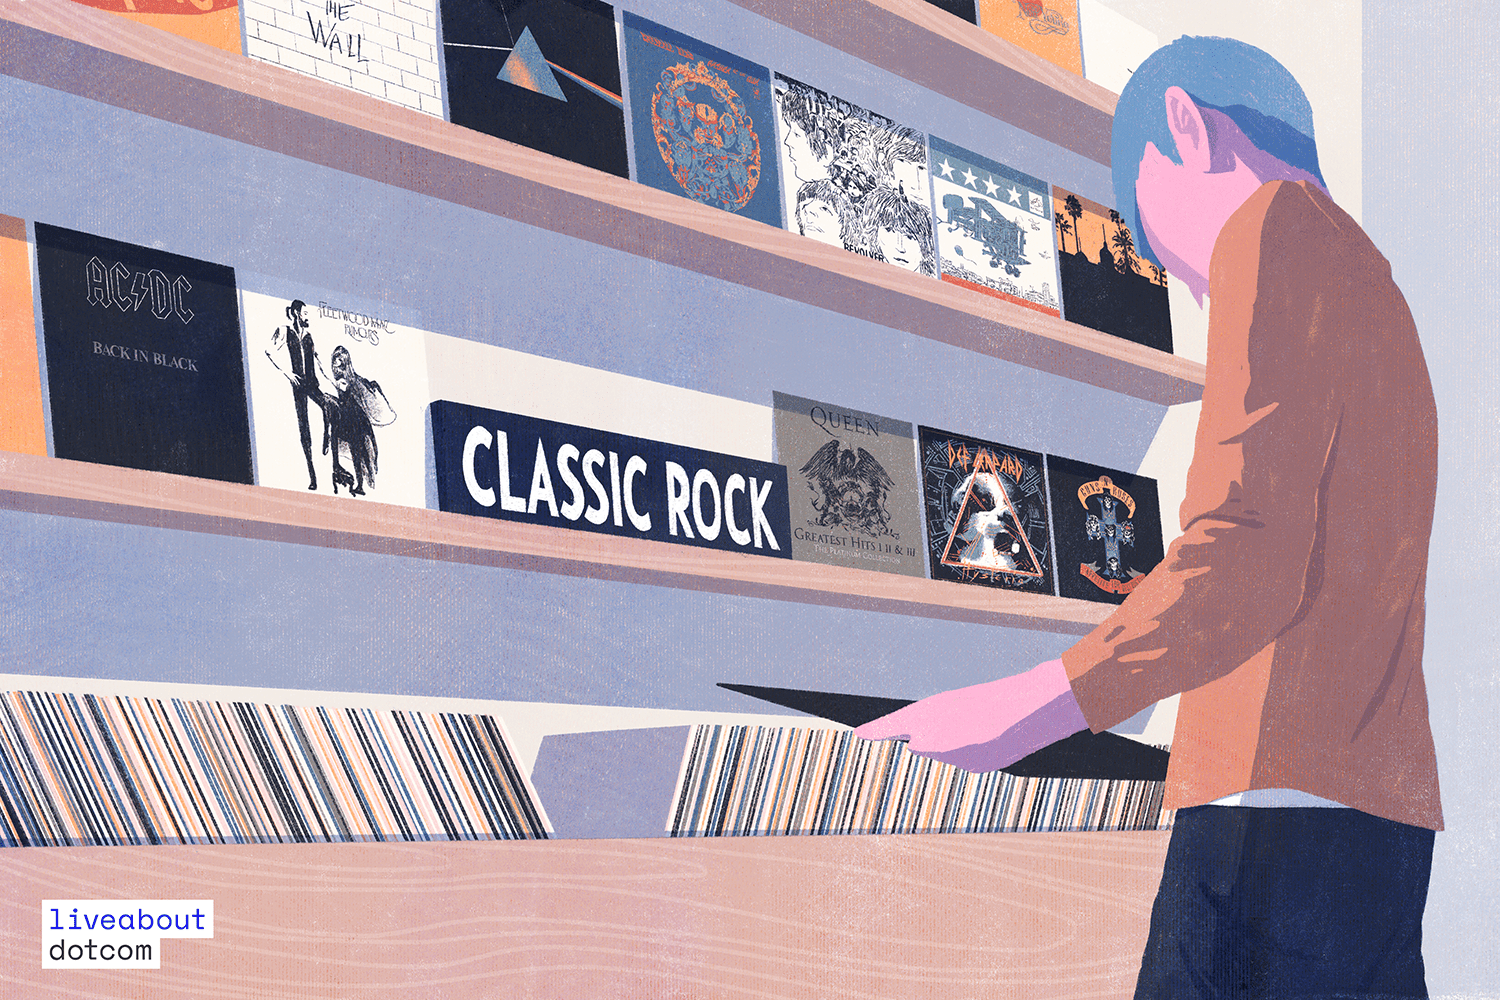 The Top 50 Classic Rock Bands